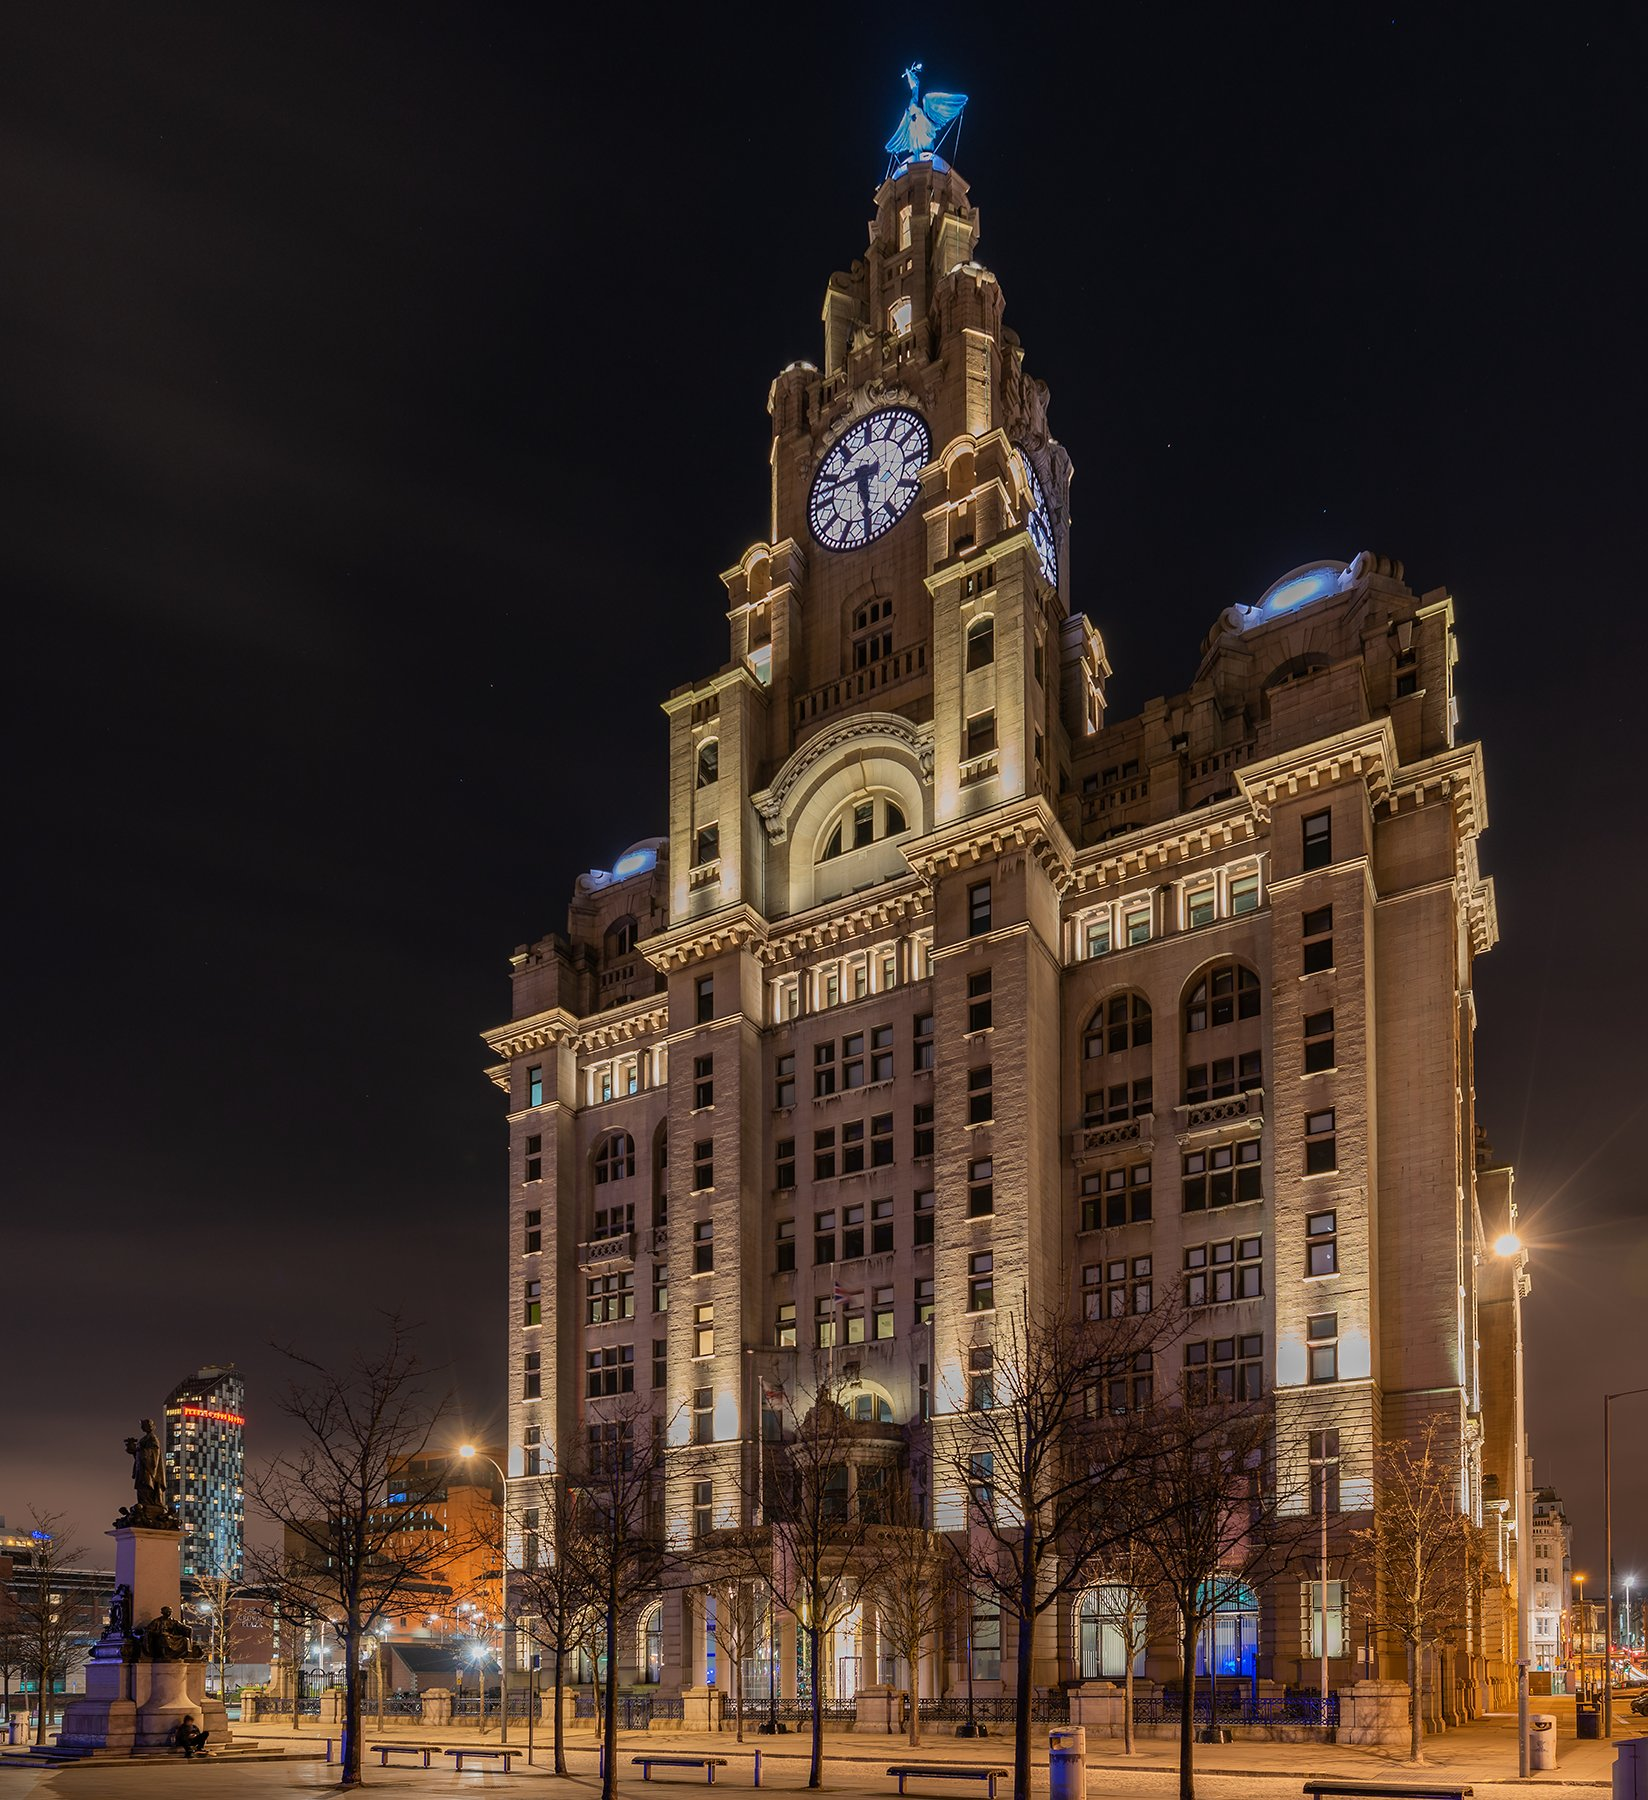 Royal Liver Building, Liverpool at night